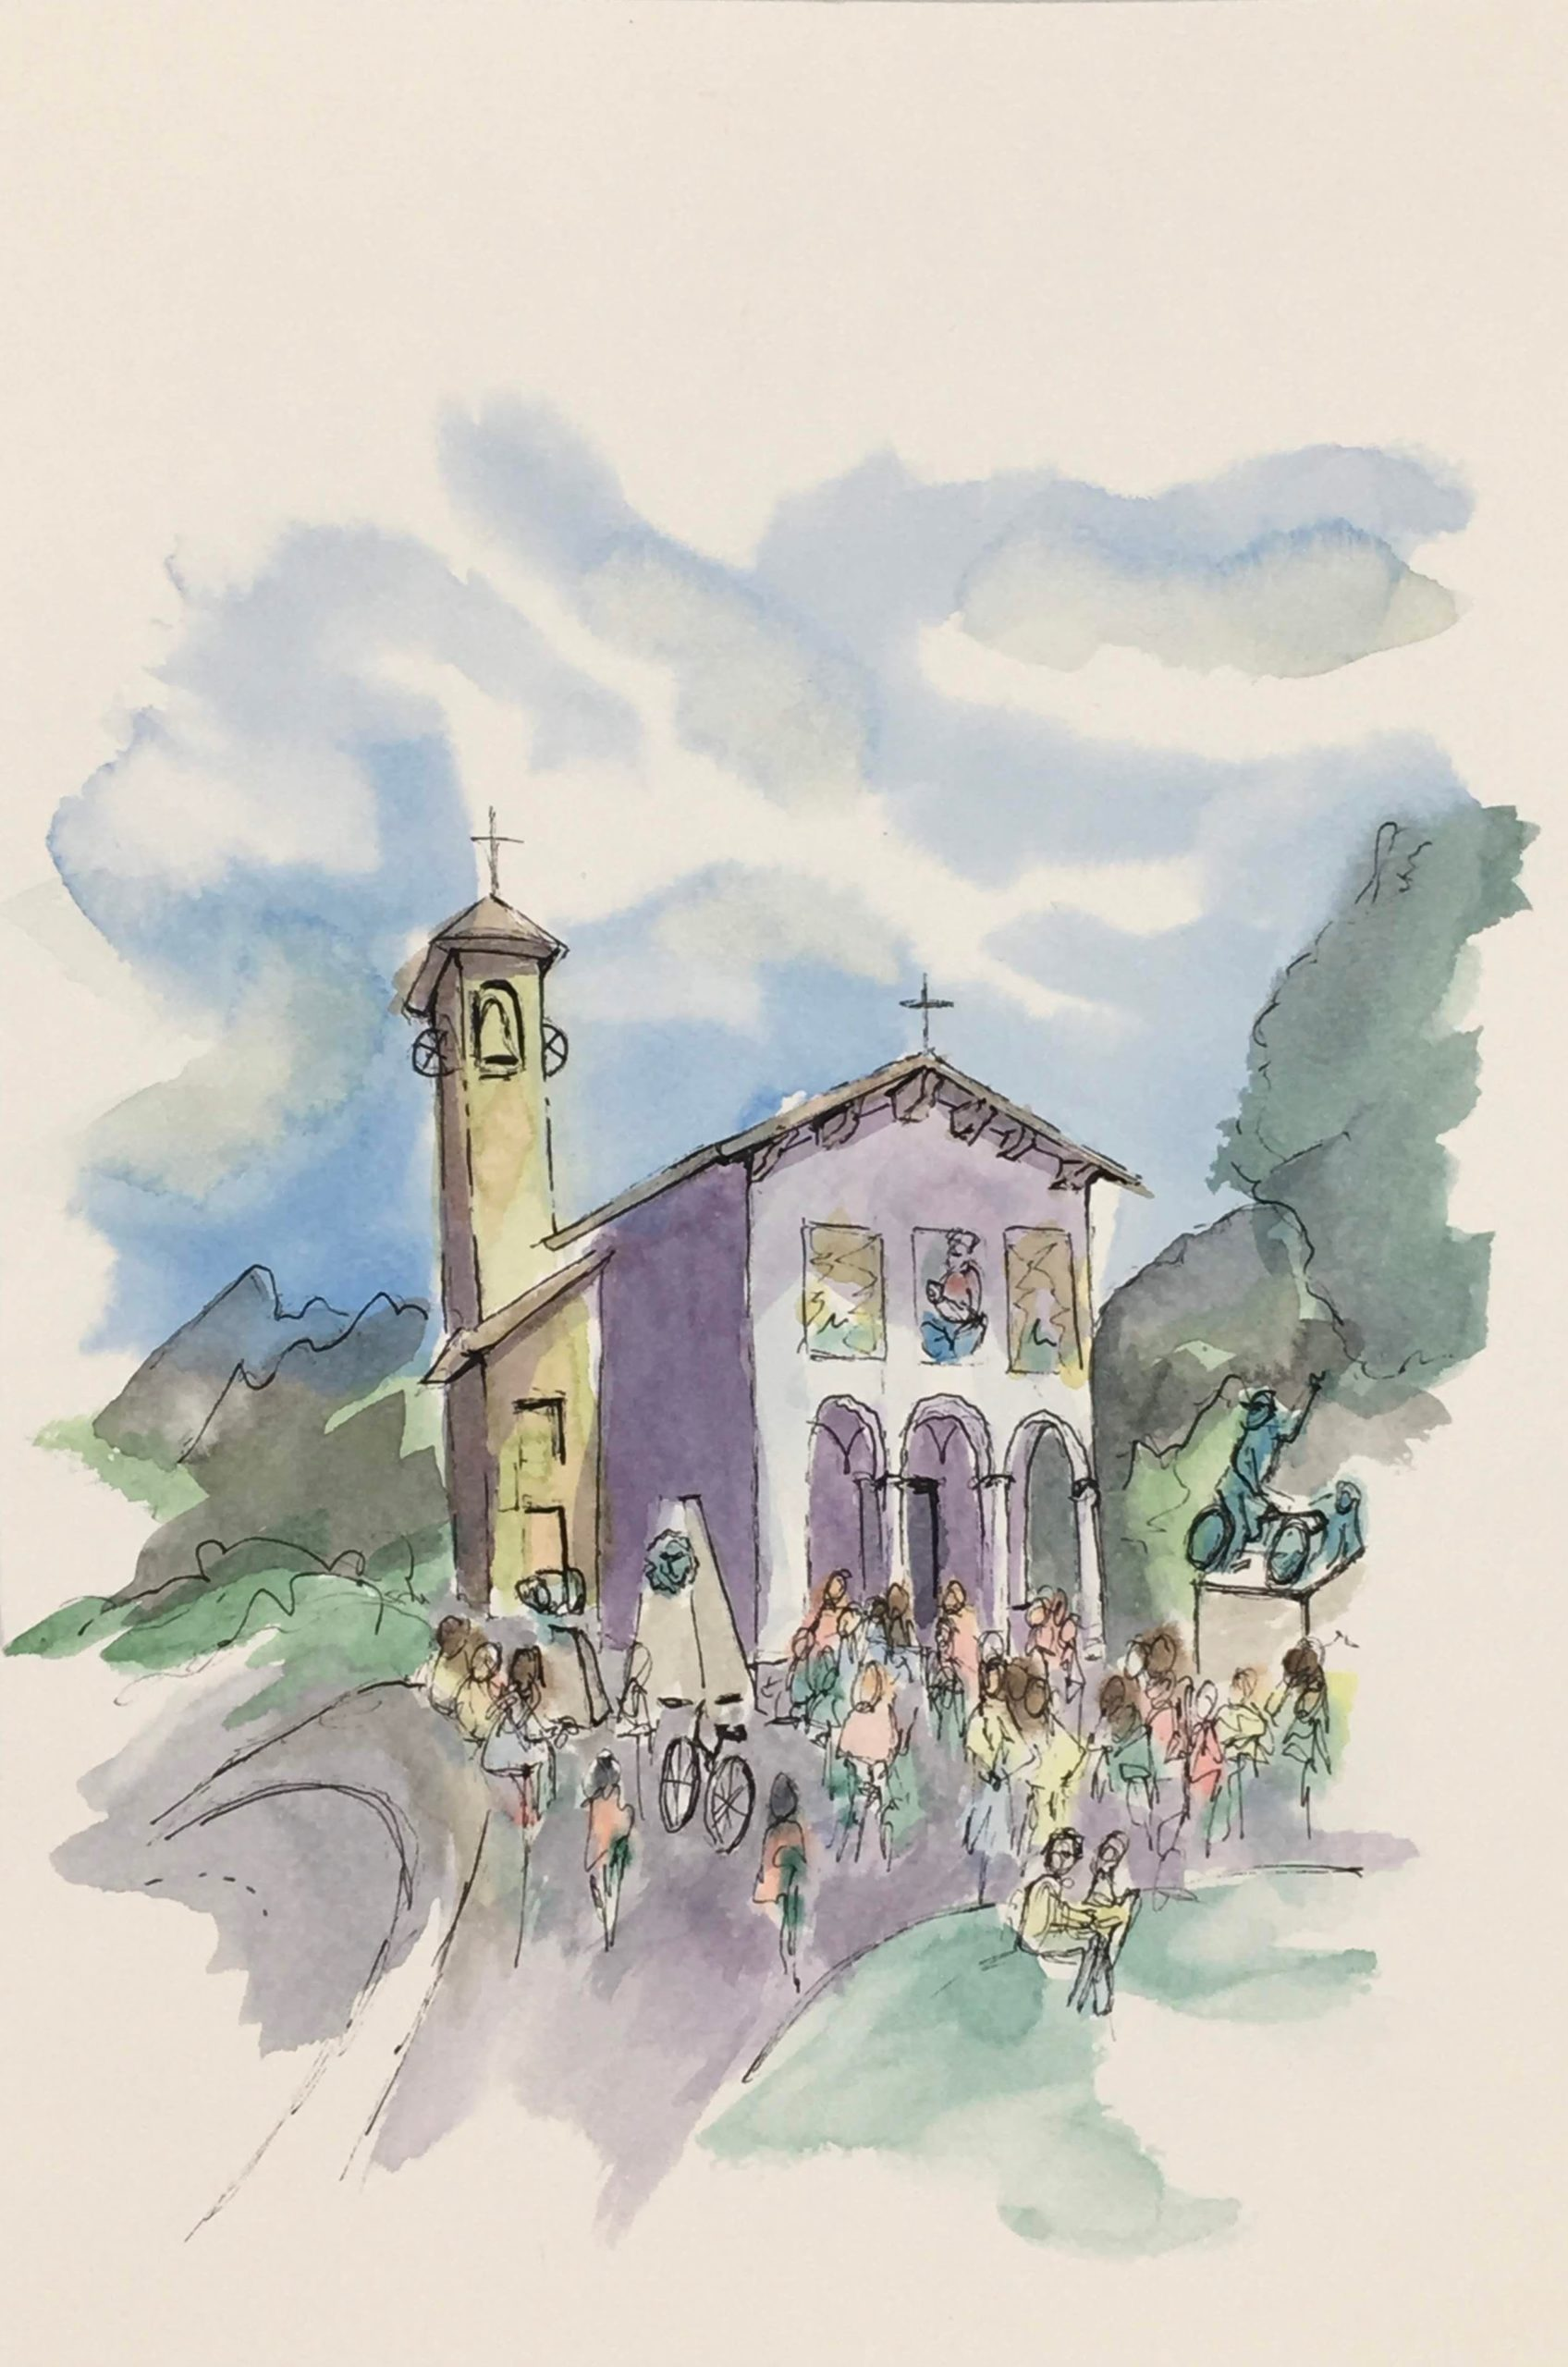 Painting of the Sanctuary of Madonna del Ghisallo